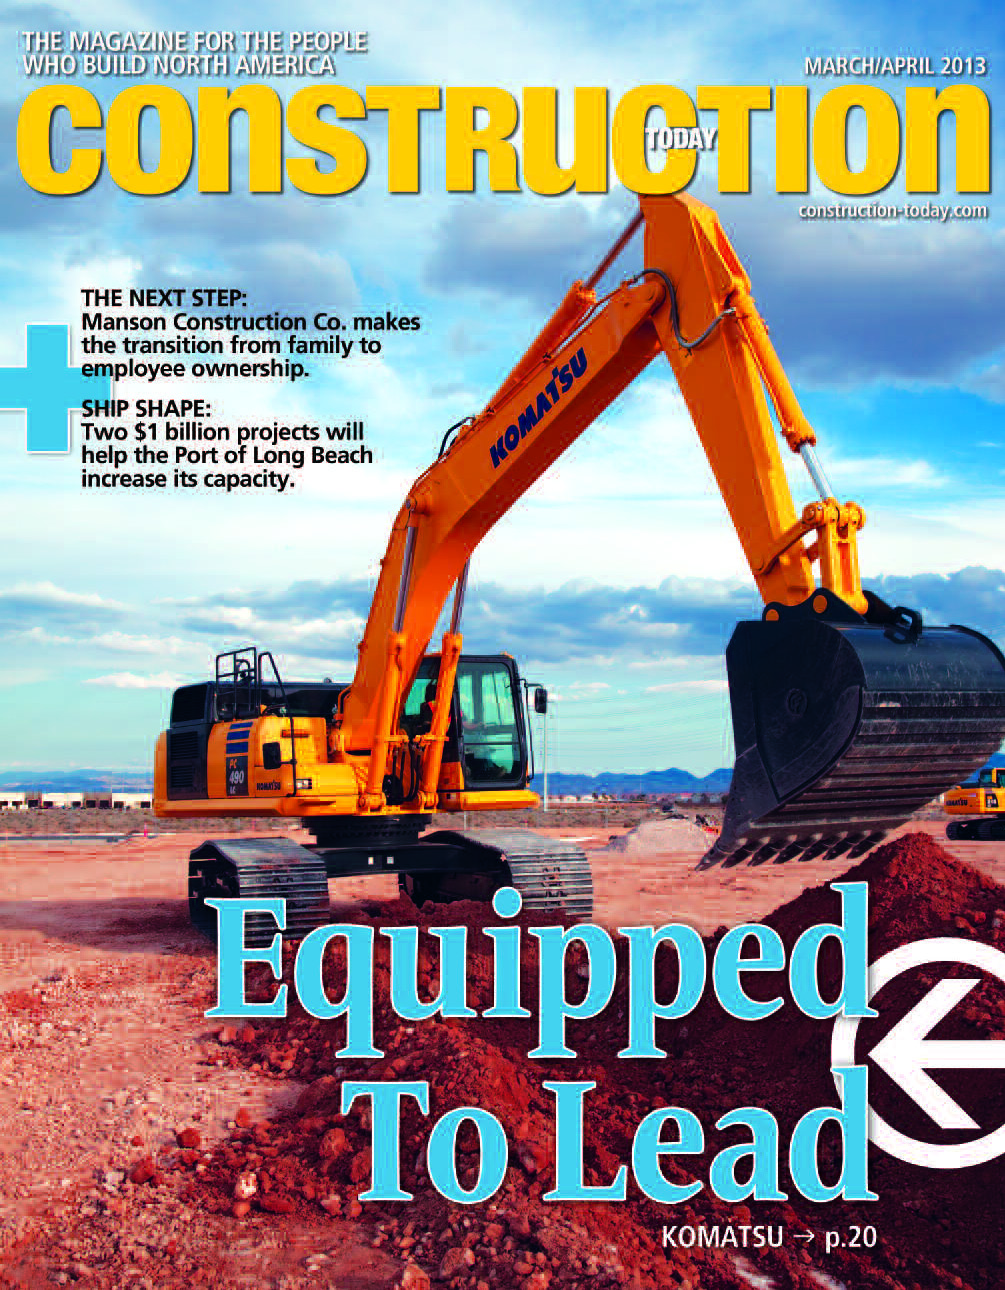 construction-today-equipped to lead - a new space - javits center_Page_1